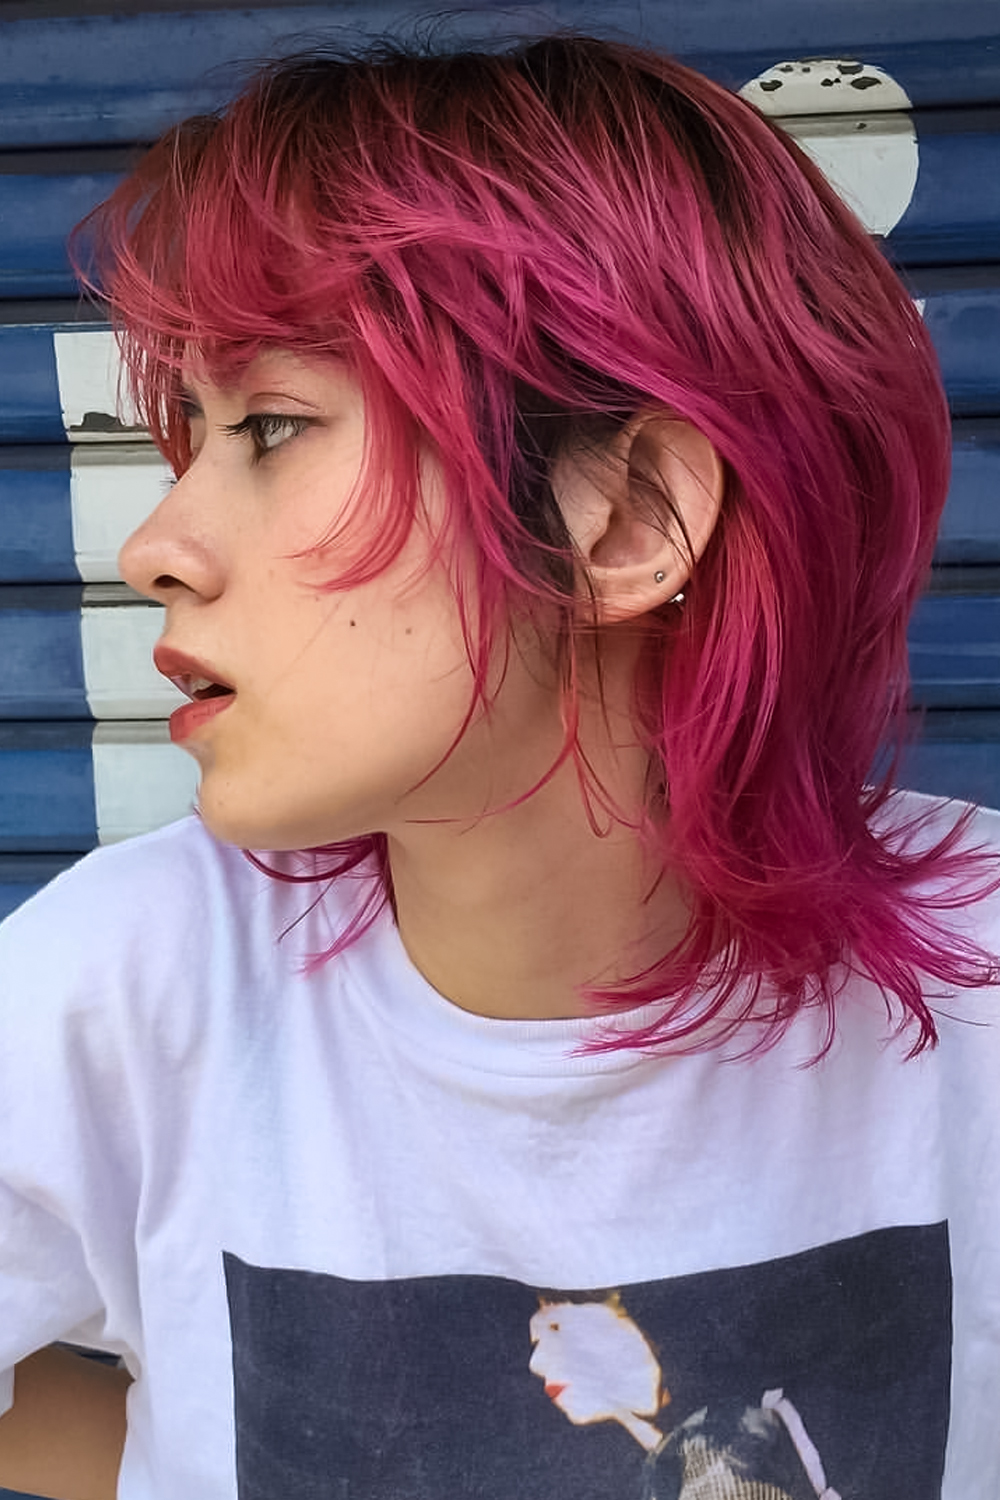 woman with dyed edgy mullet haircut is posing